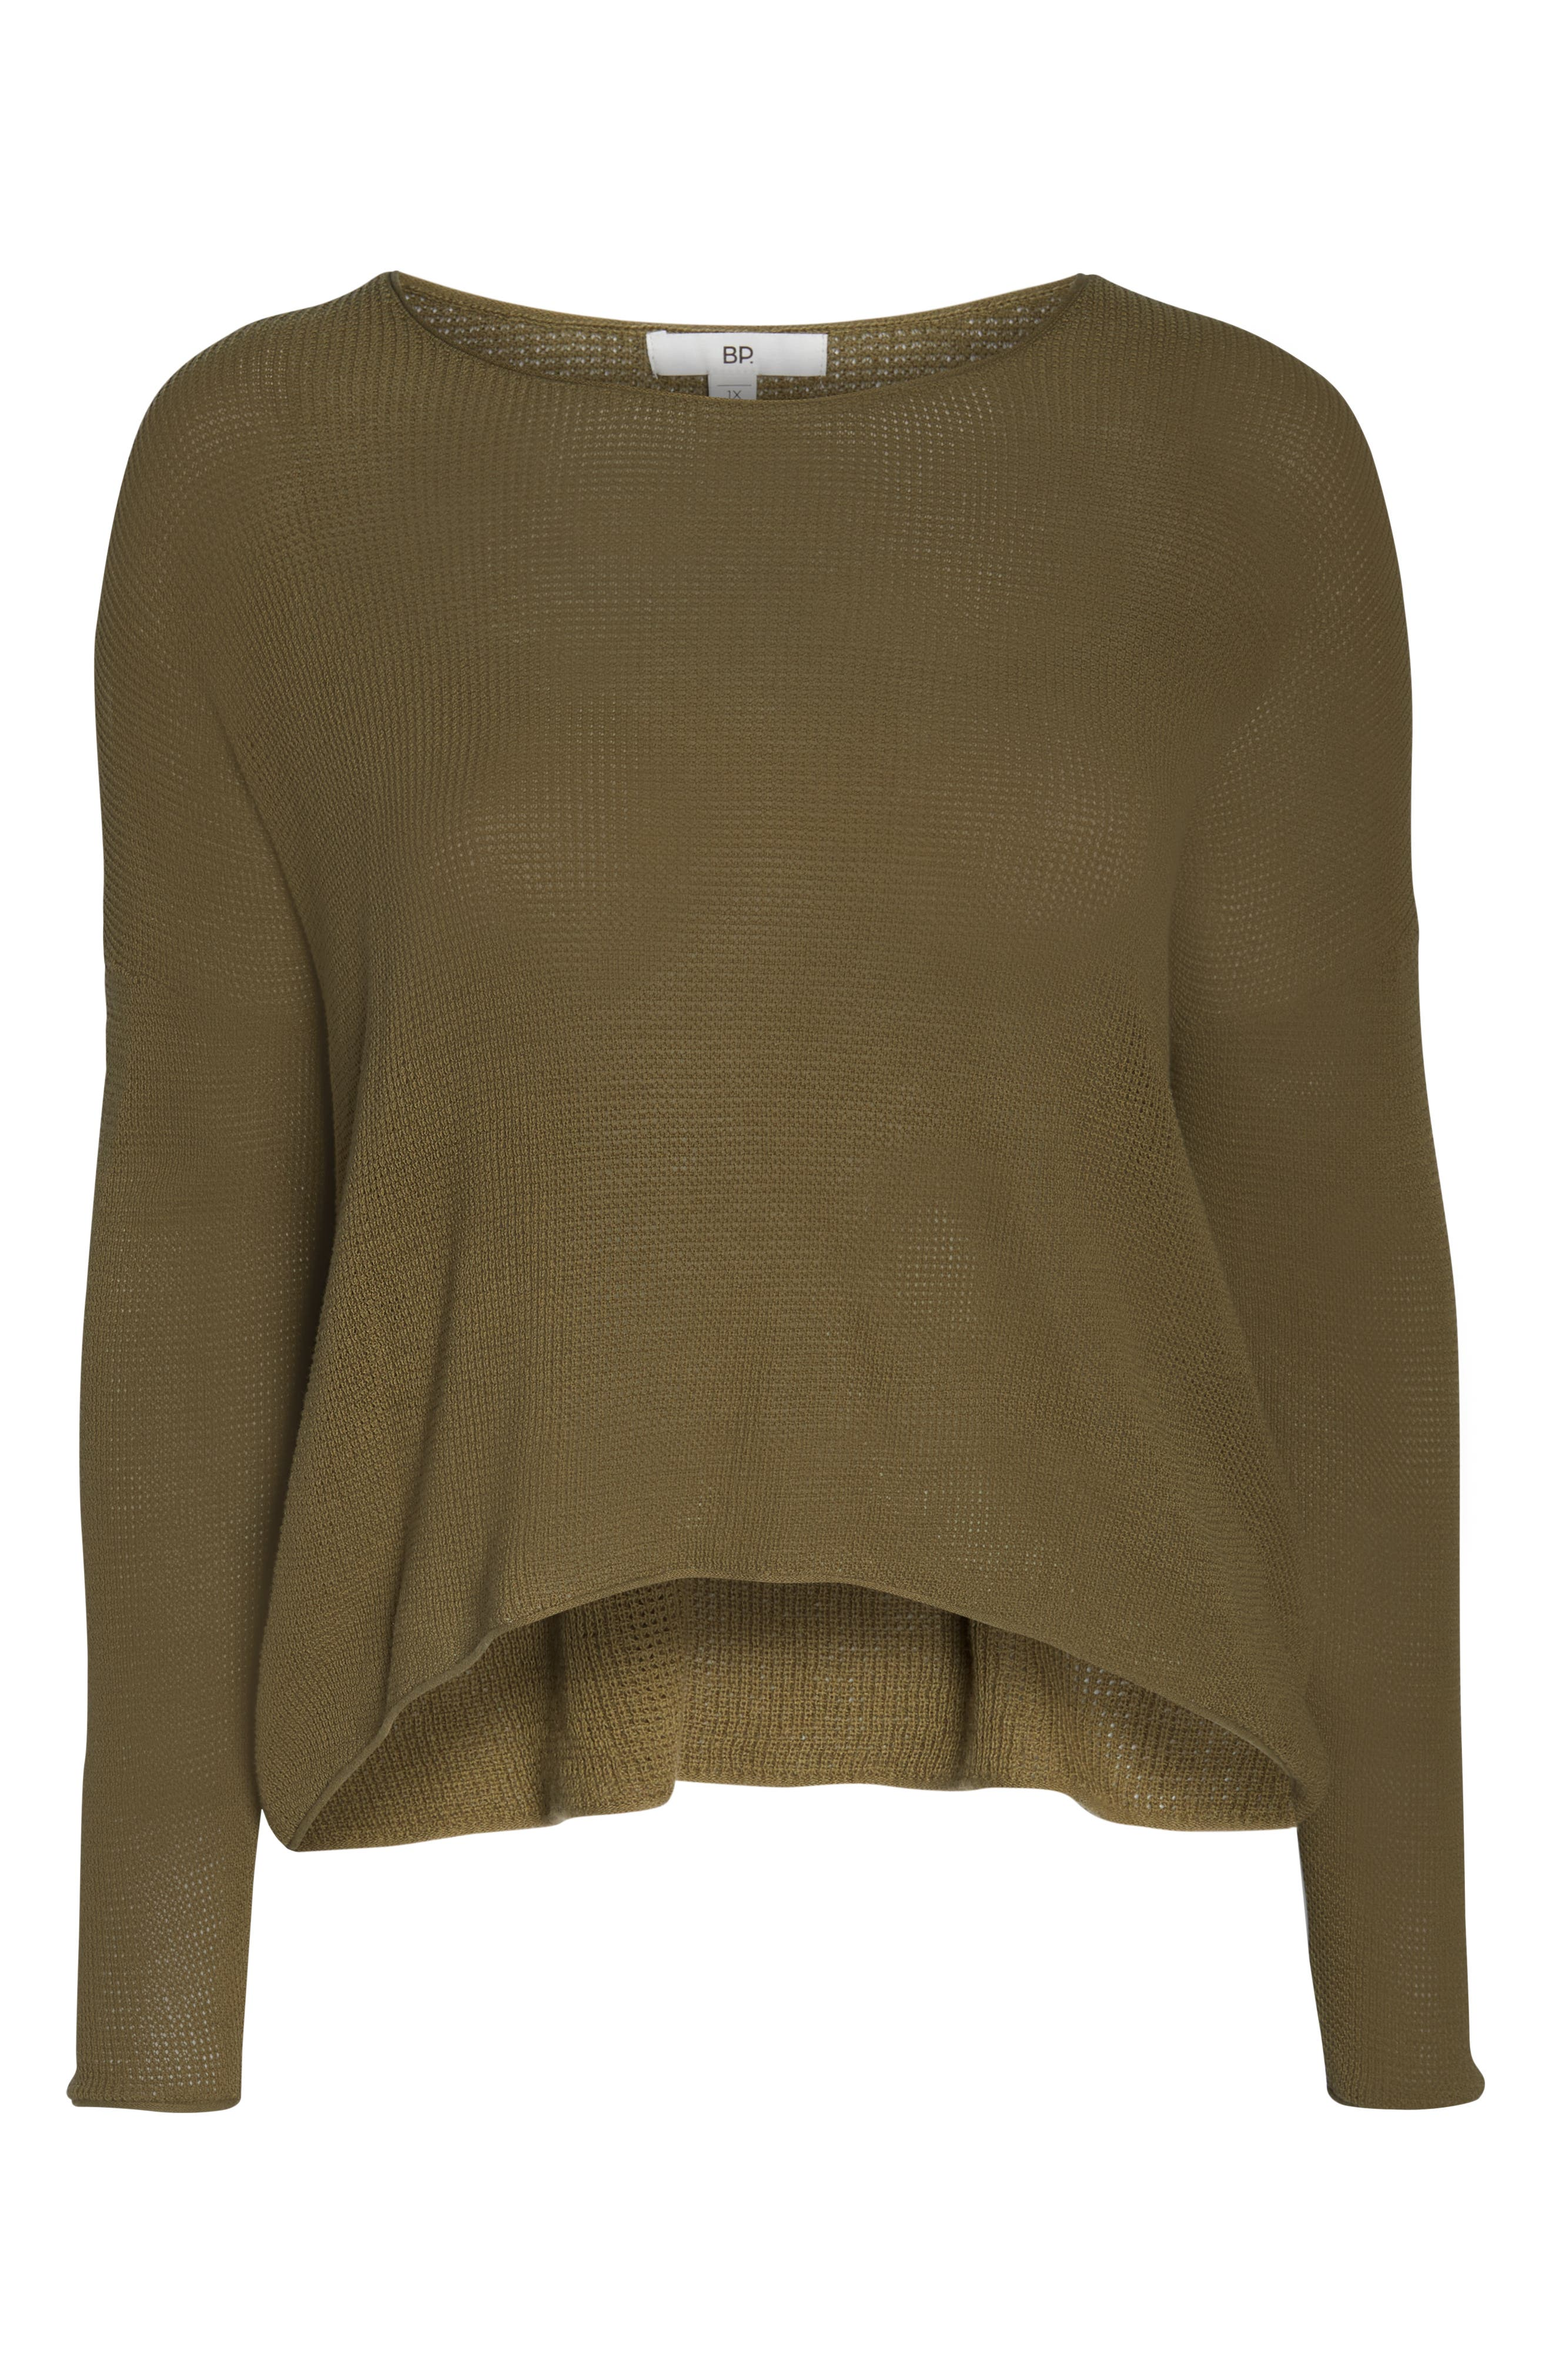 Coastal Thermal Sweater,                             Alternate thumbnail 12, color,                             OLIVE BURNT